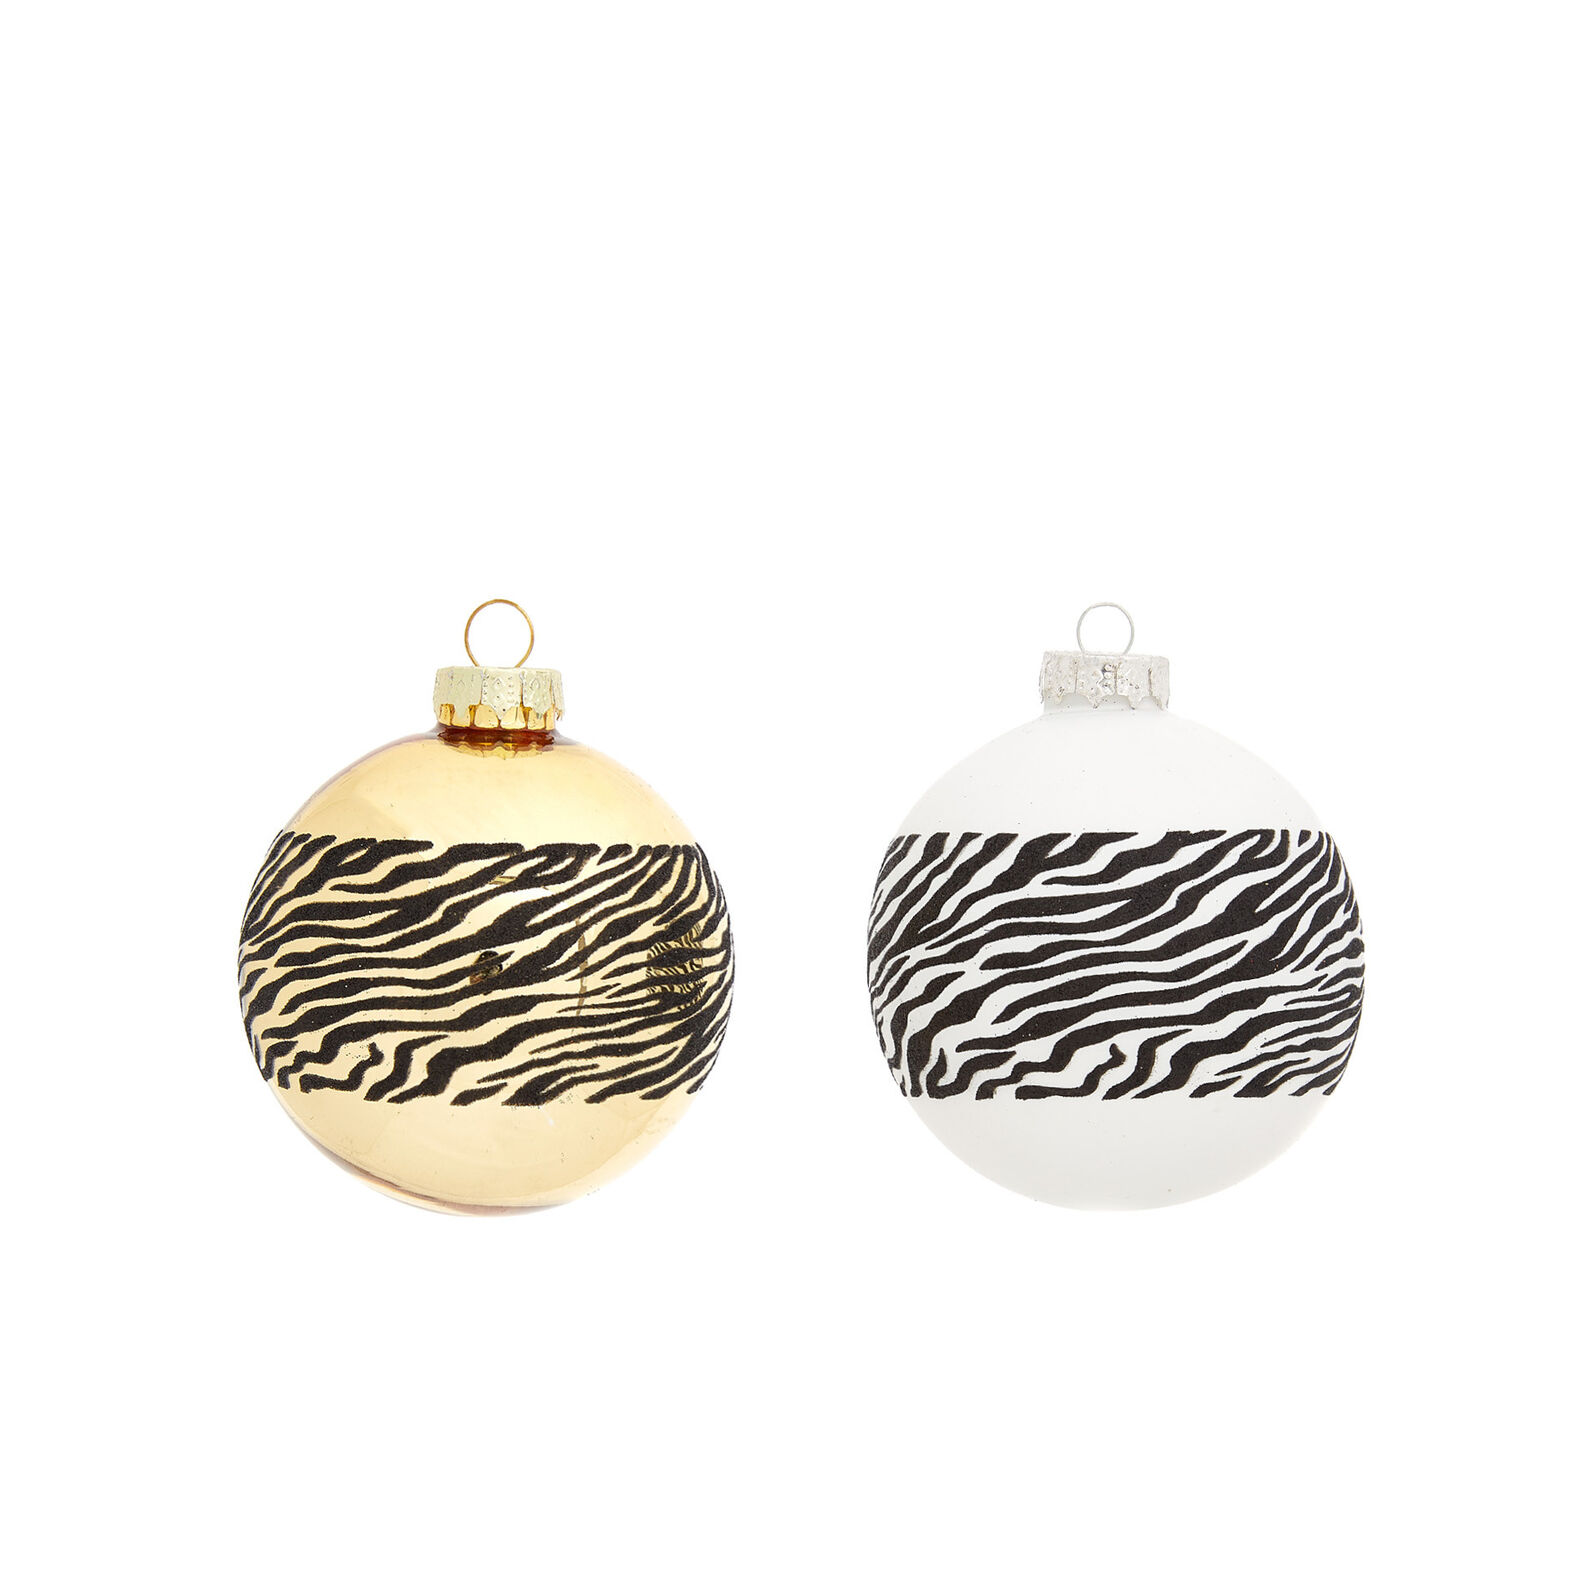 Hand-decorated bauble with zebra stripes